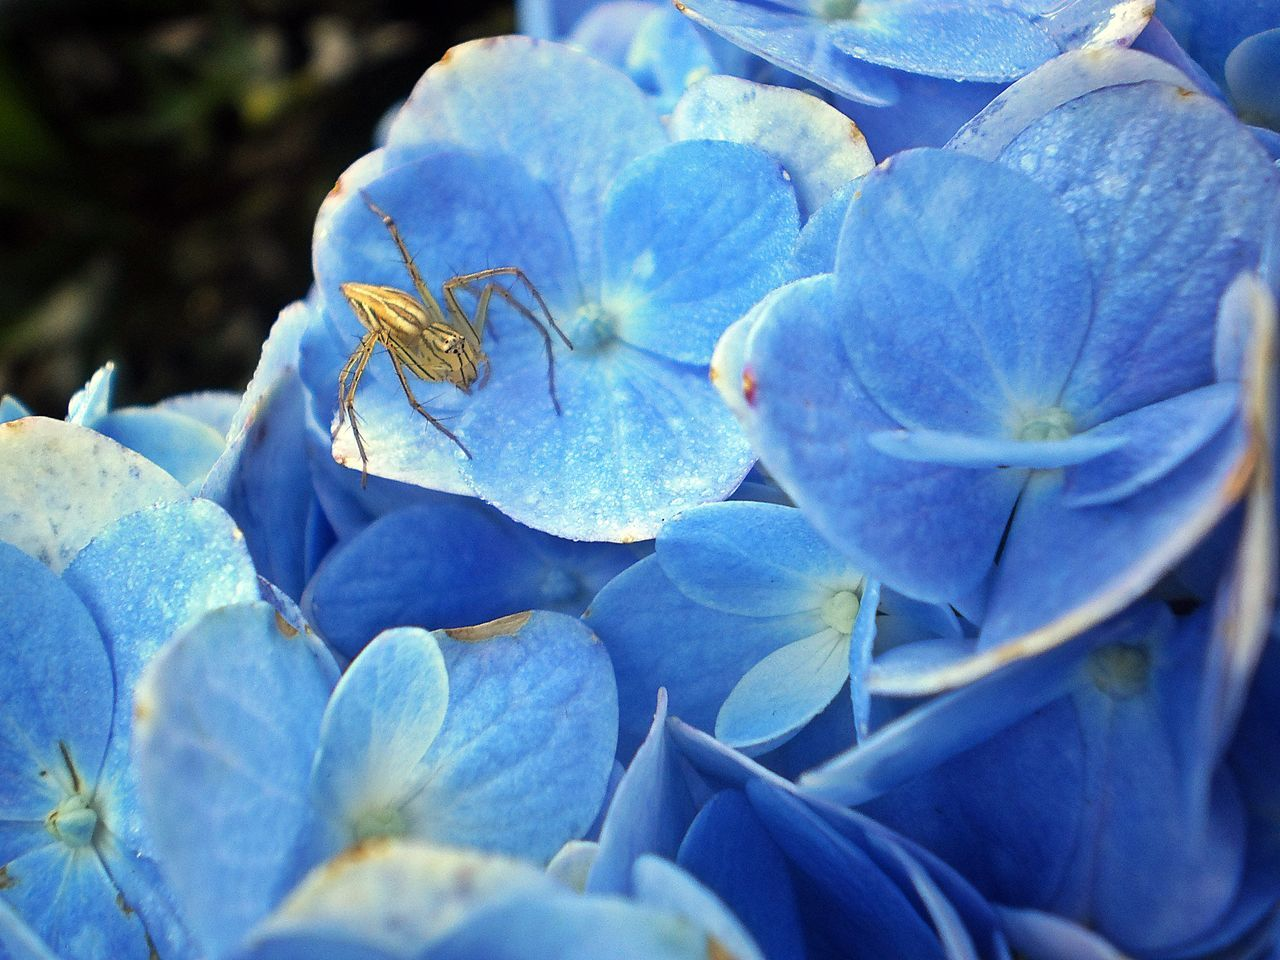 Blue Nature Close-up Flower Beauty In Nature No People Outdoors Plant Spider Minerva Arachnid